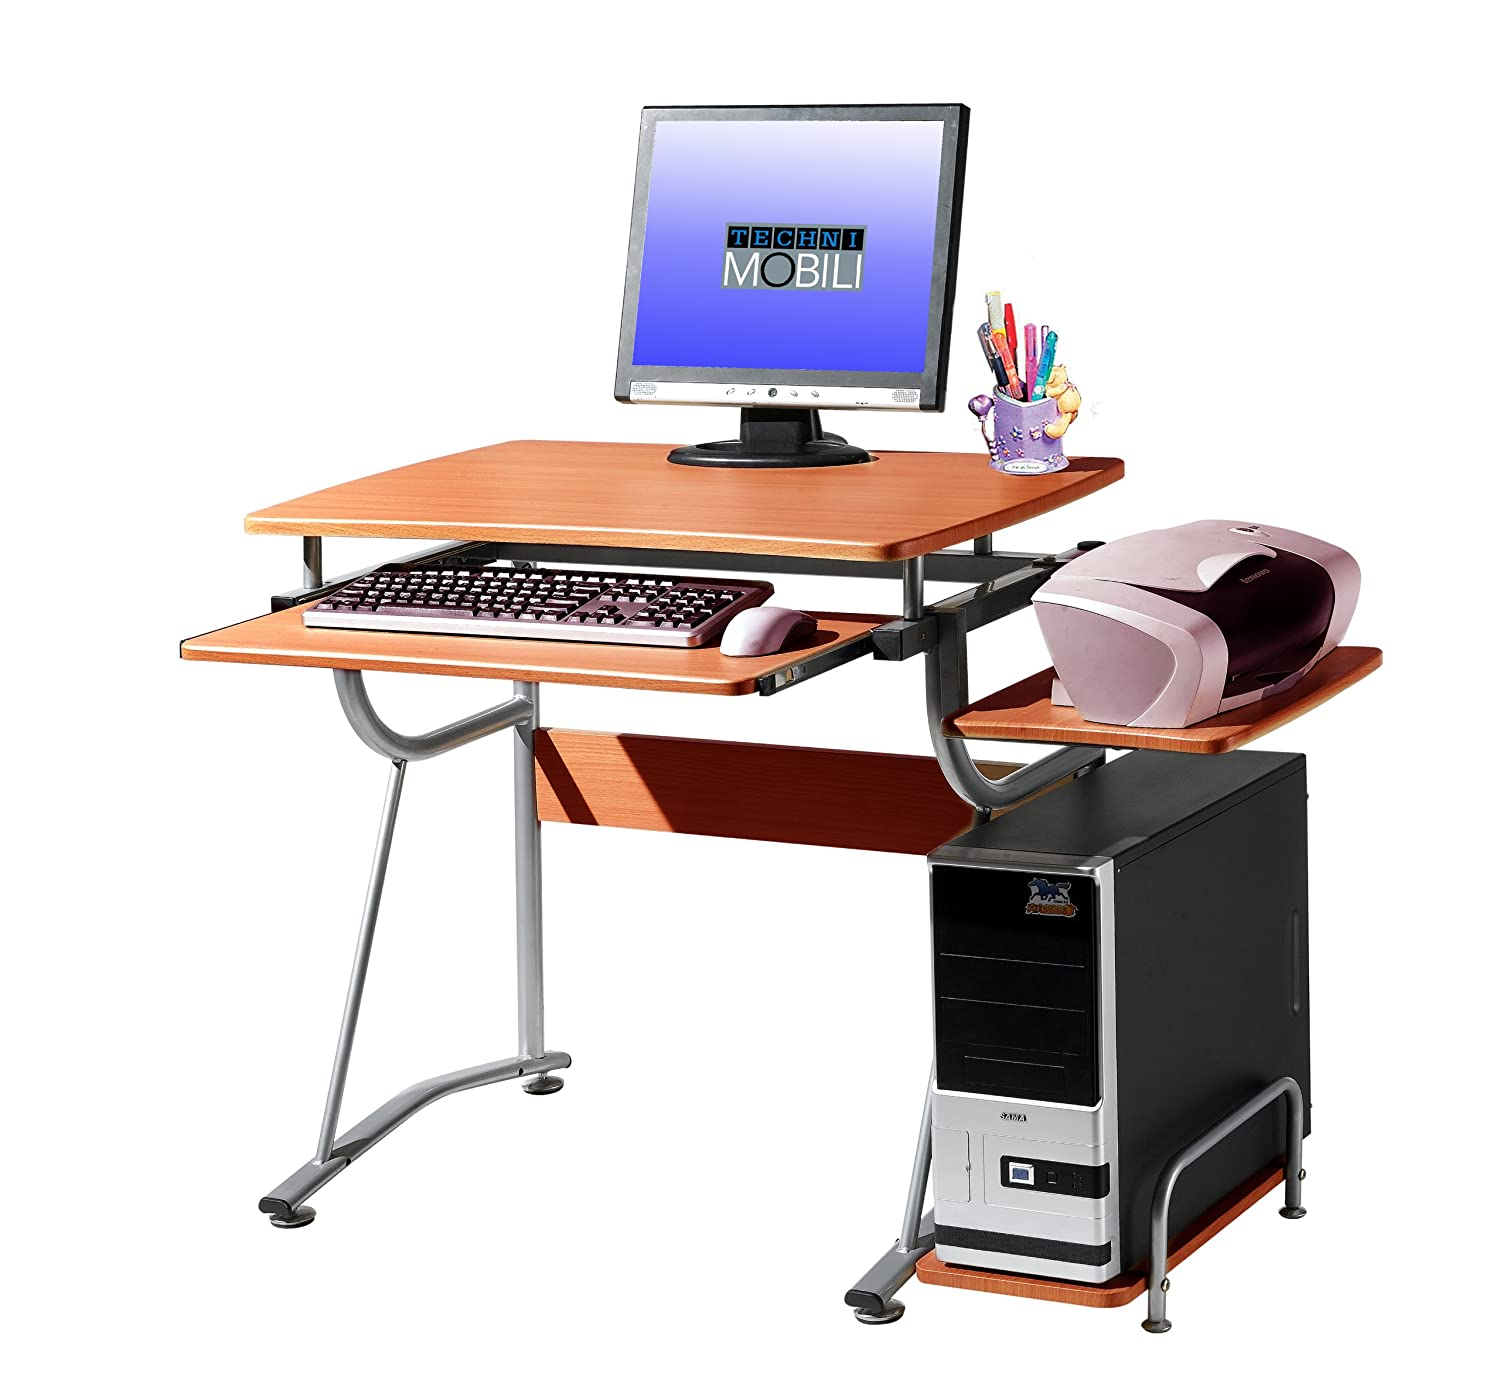 cool computer desks for sale images pictures becuo